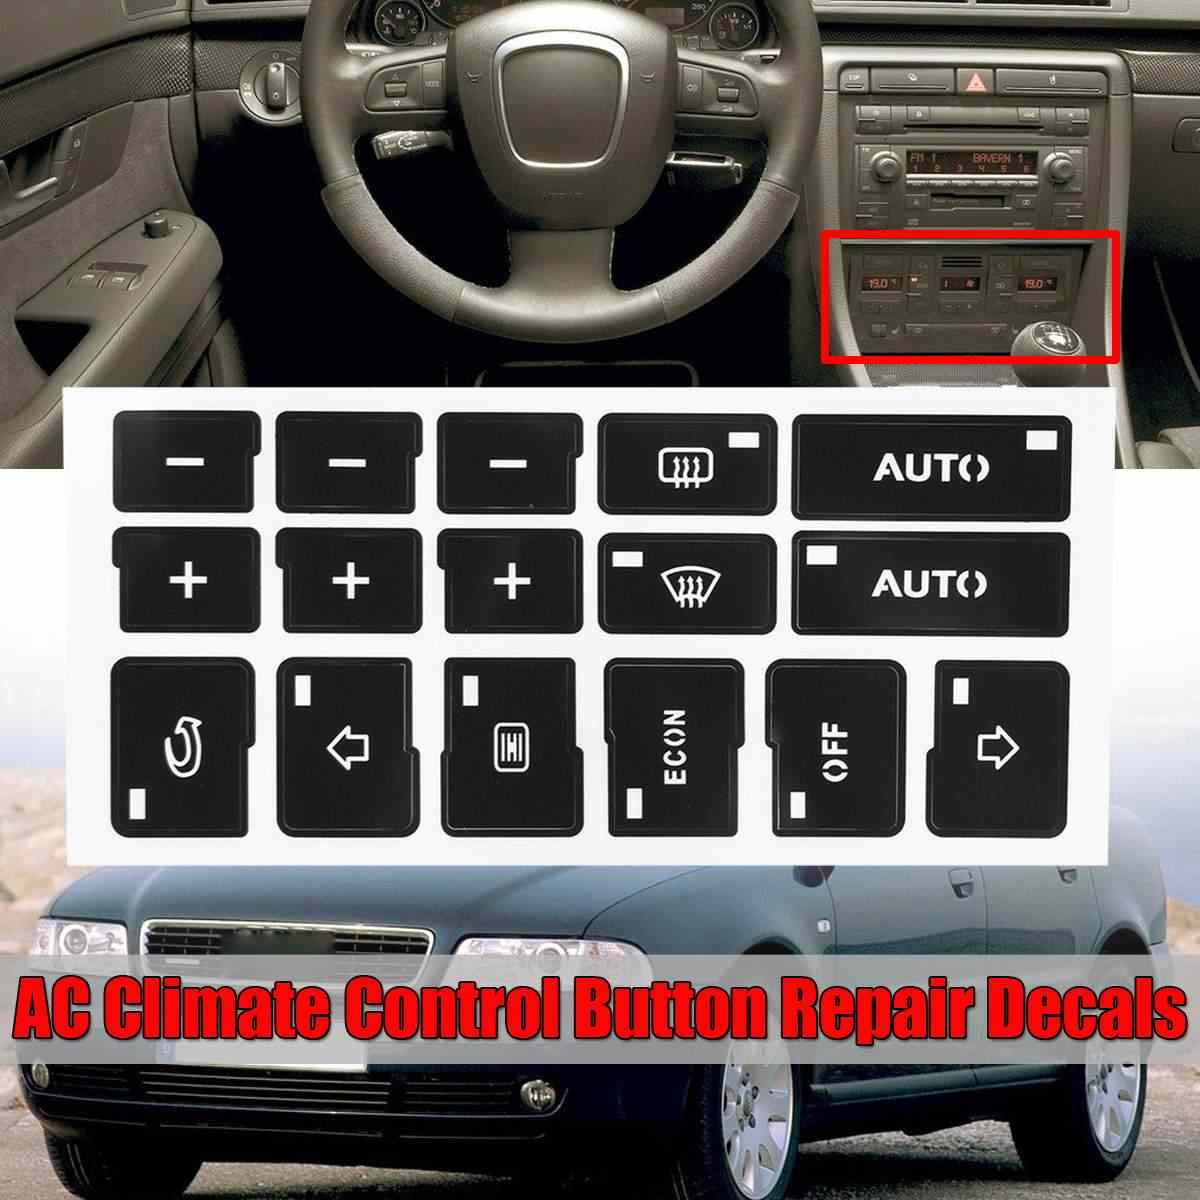 1x Auto Airconditioning AC Klimaat Controle Knop Reparatie Stickers Decals Voor Audi A4 B6 B7 2000 2001 2002 2003 2004